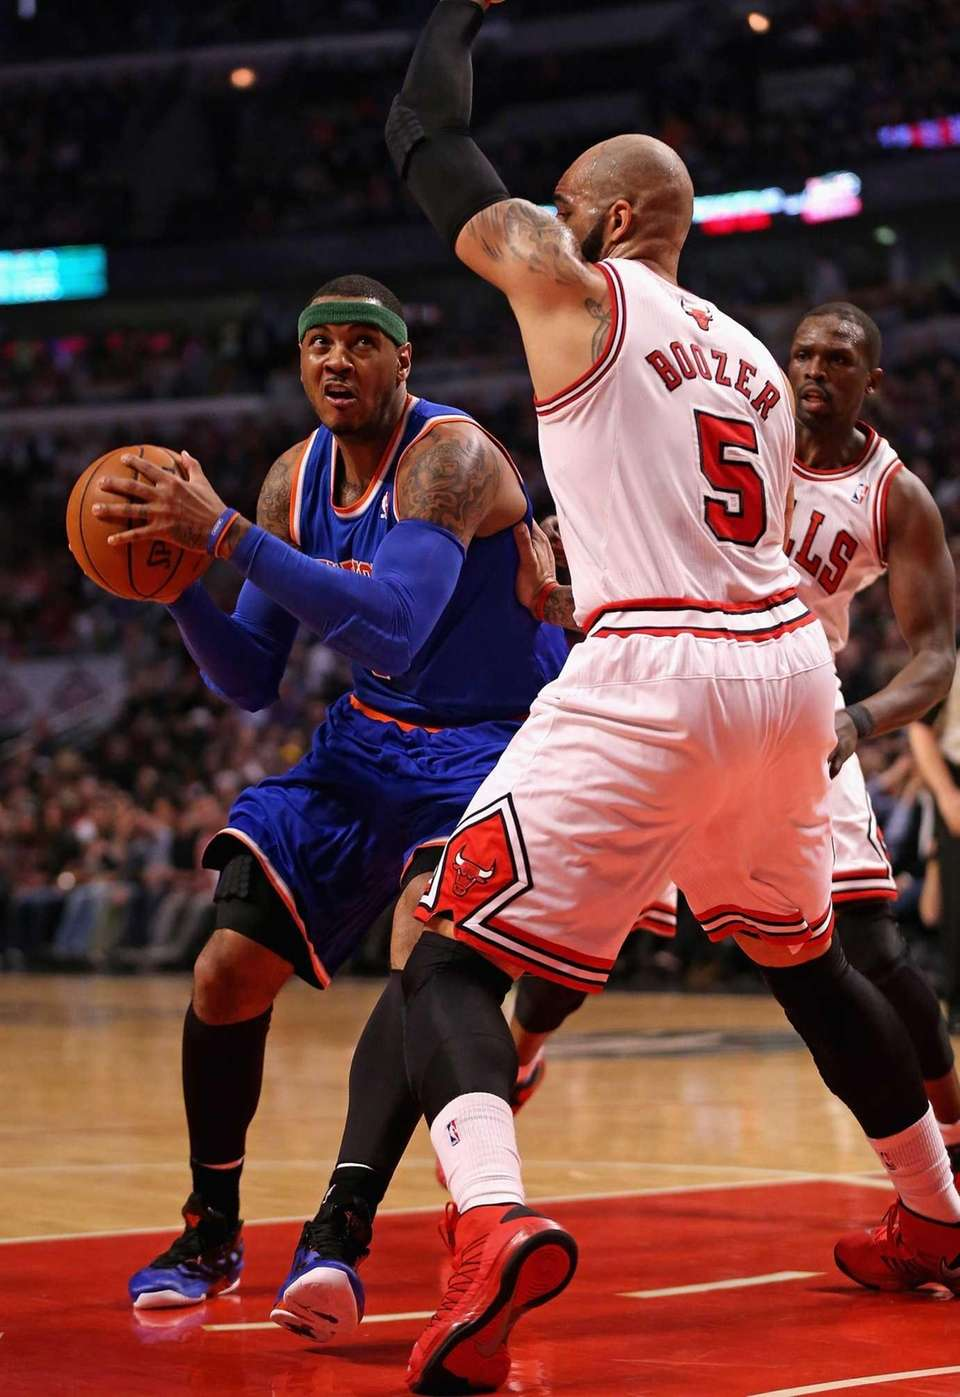 Carmelo Anthony of the Knicks drives against Carlos